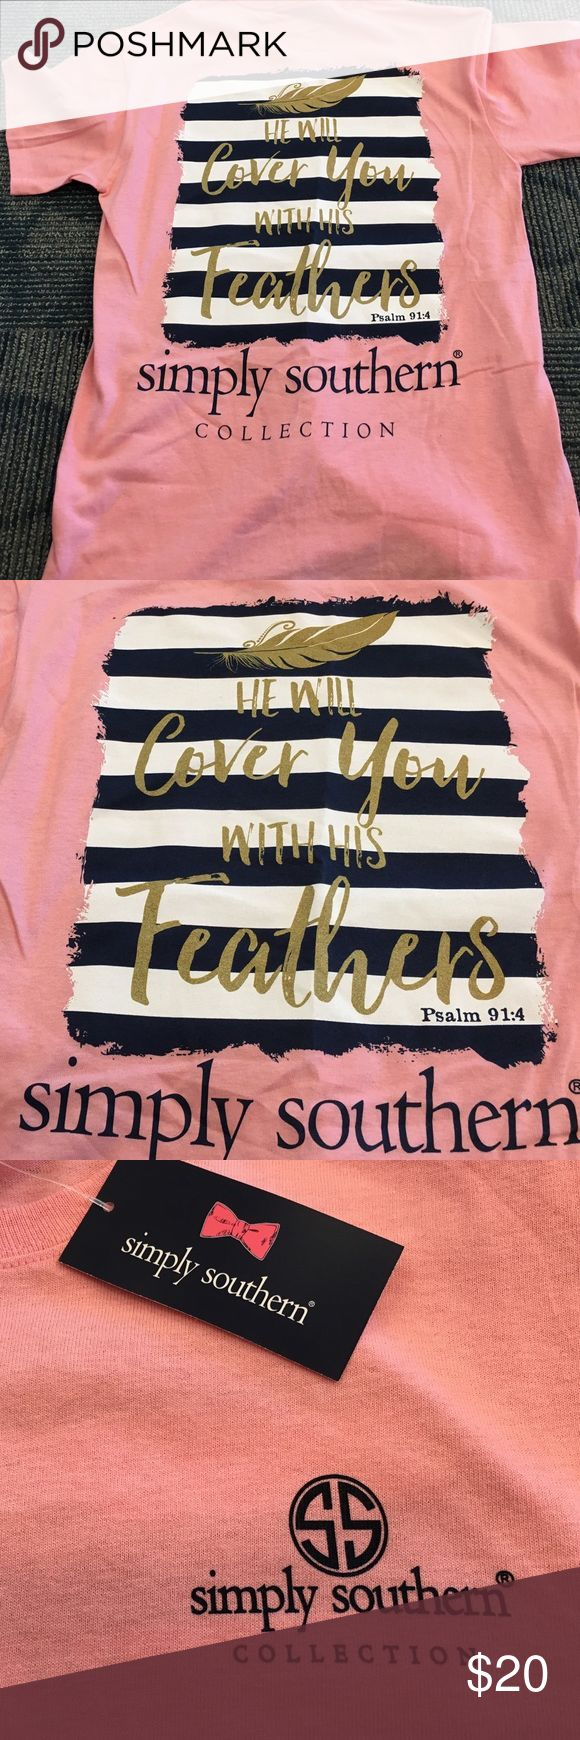 New Simply southern tee shirt for women Women's tee with psalm 9 1:4 on the back.  Brand new! Simply southern  Tops Tees - Short Sleeve